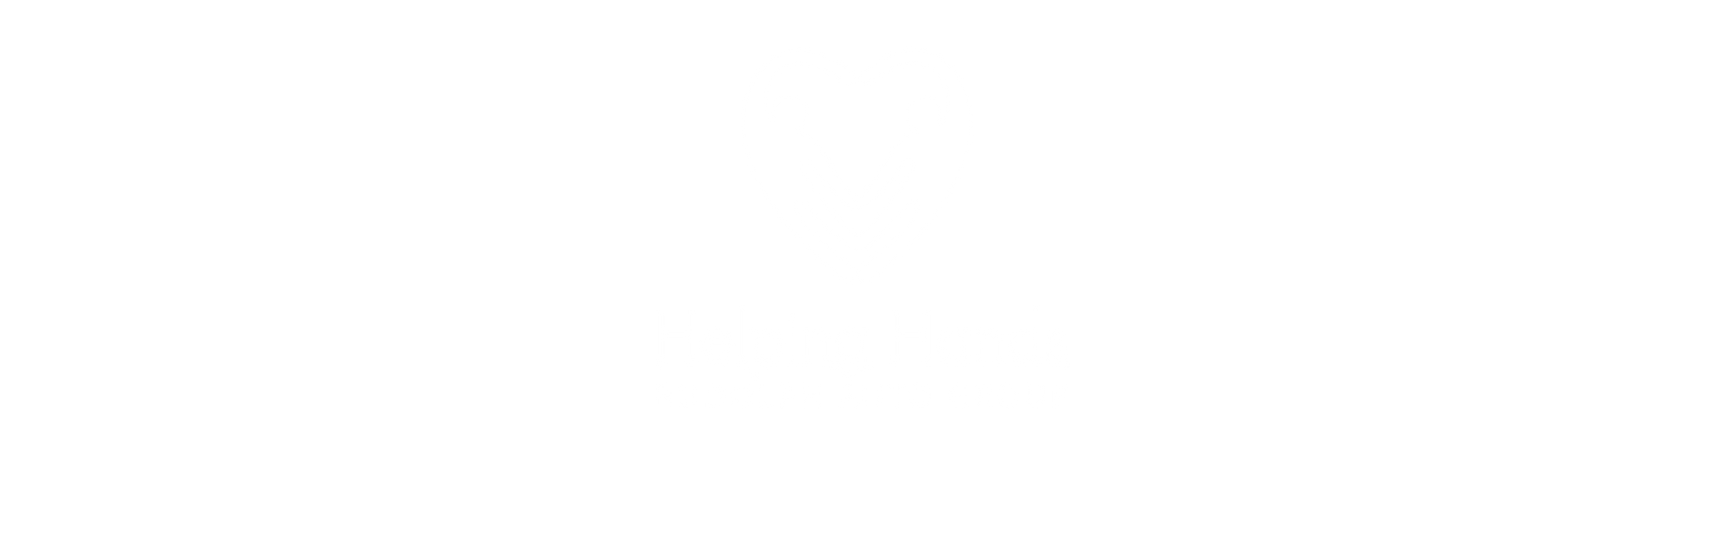 Helping Hands Banner1.png